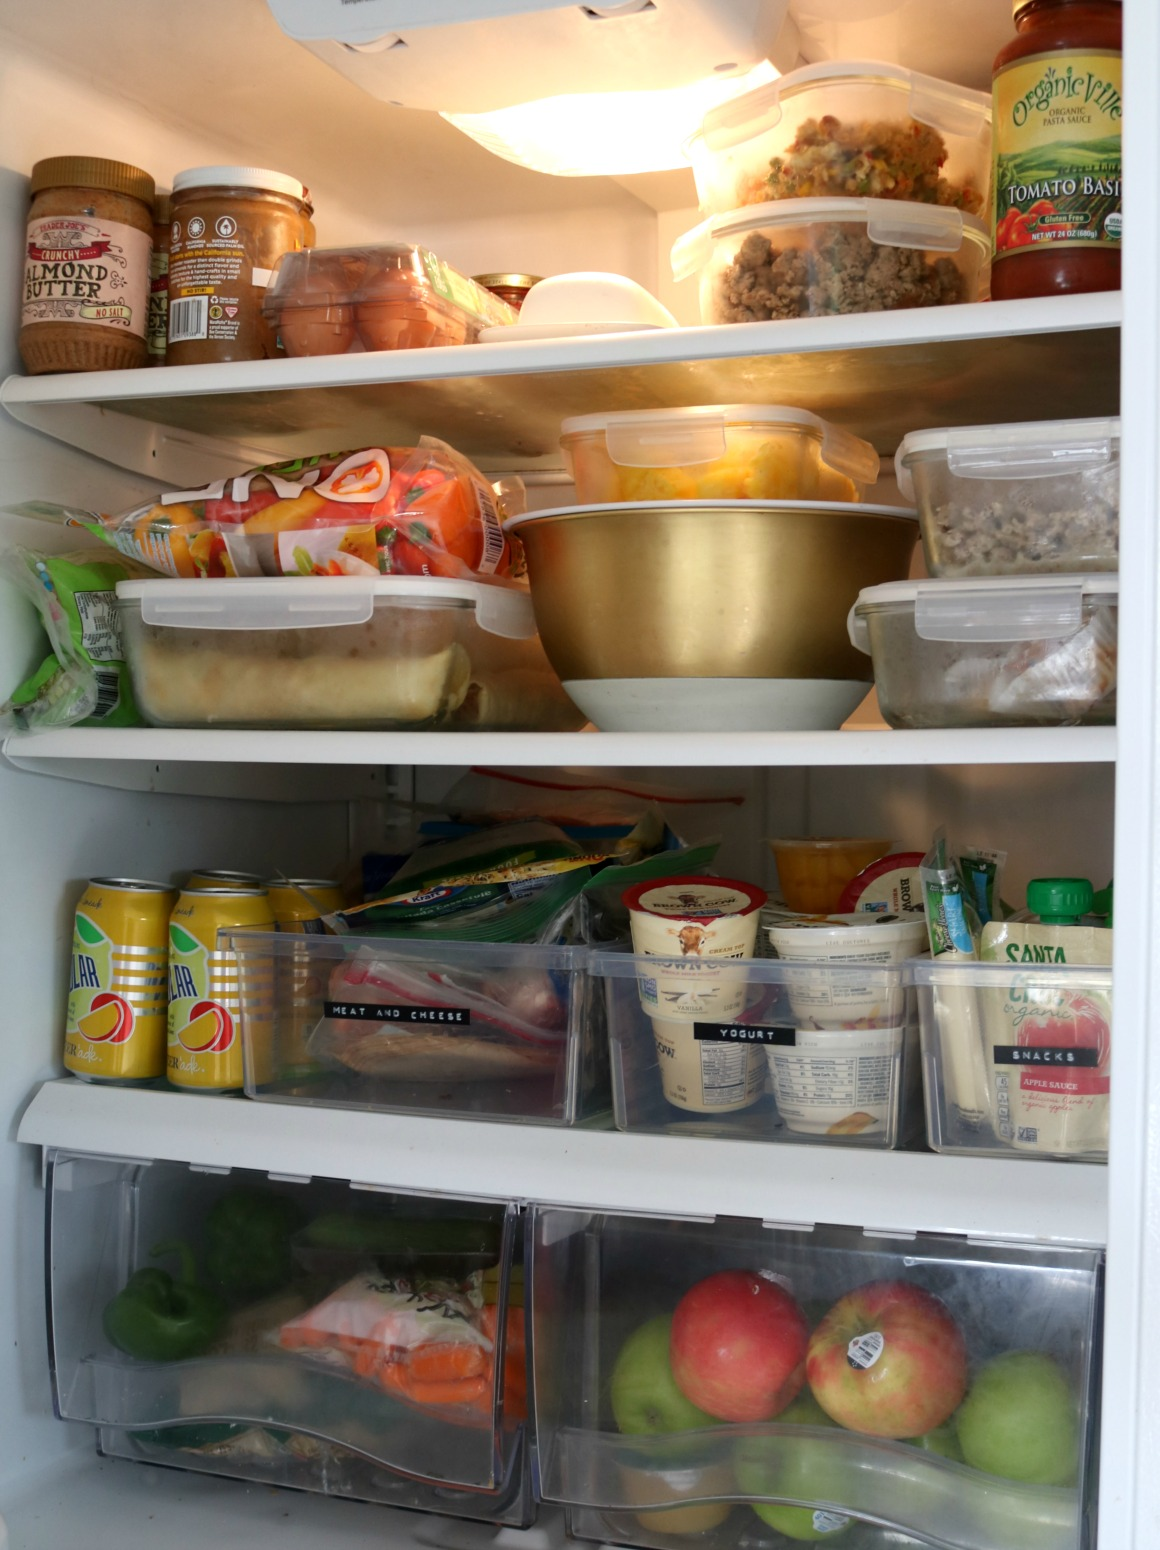 Small Spaces- Fridge Organizing Tips